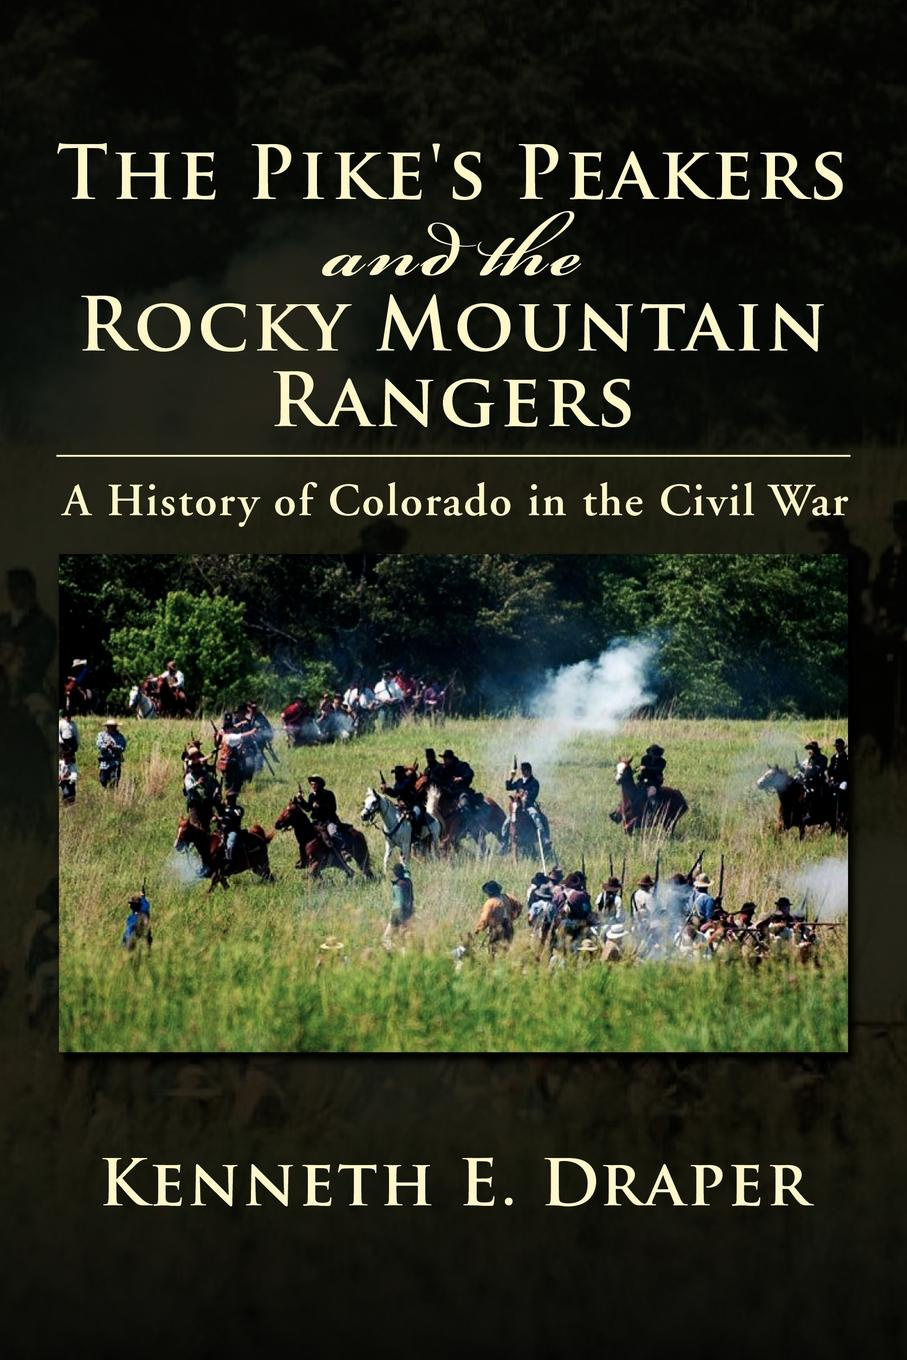 Kenneth E. Draper The Pike's Peakers and the Rocky Mountain Rangers. A History of Colorado in the Civil War pamela nissen rocky mountain proposal